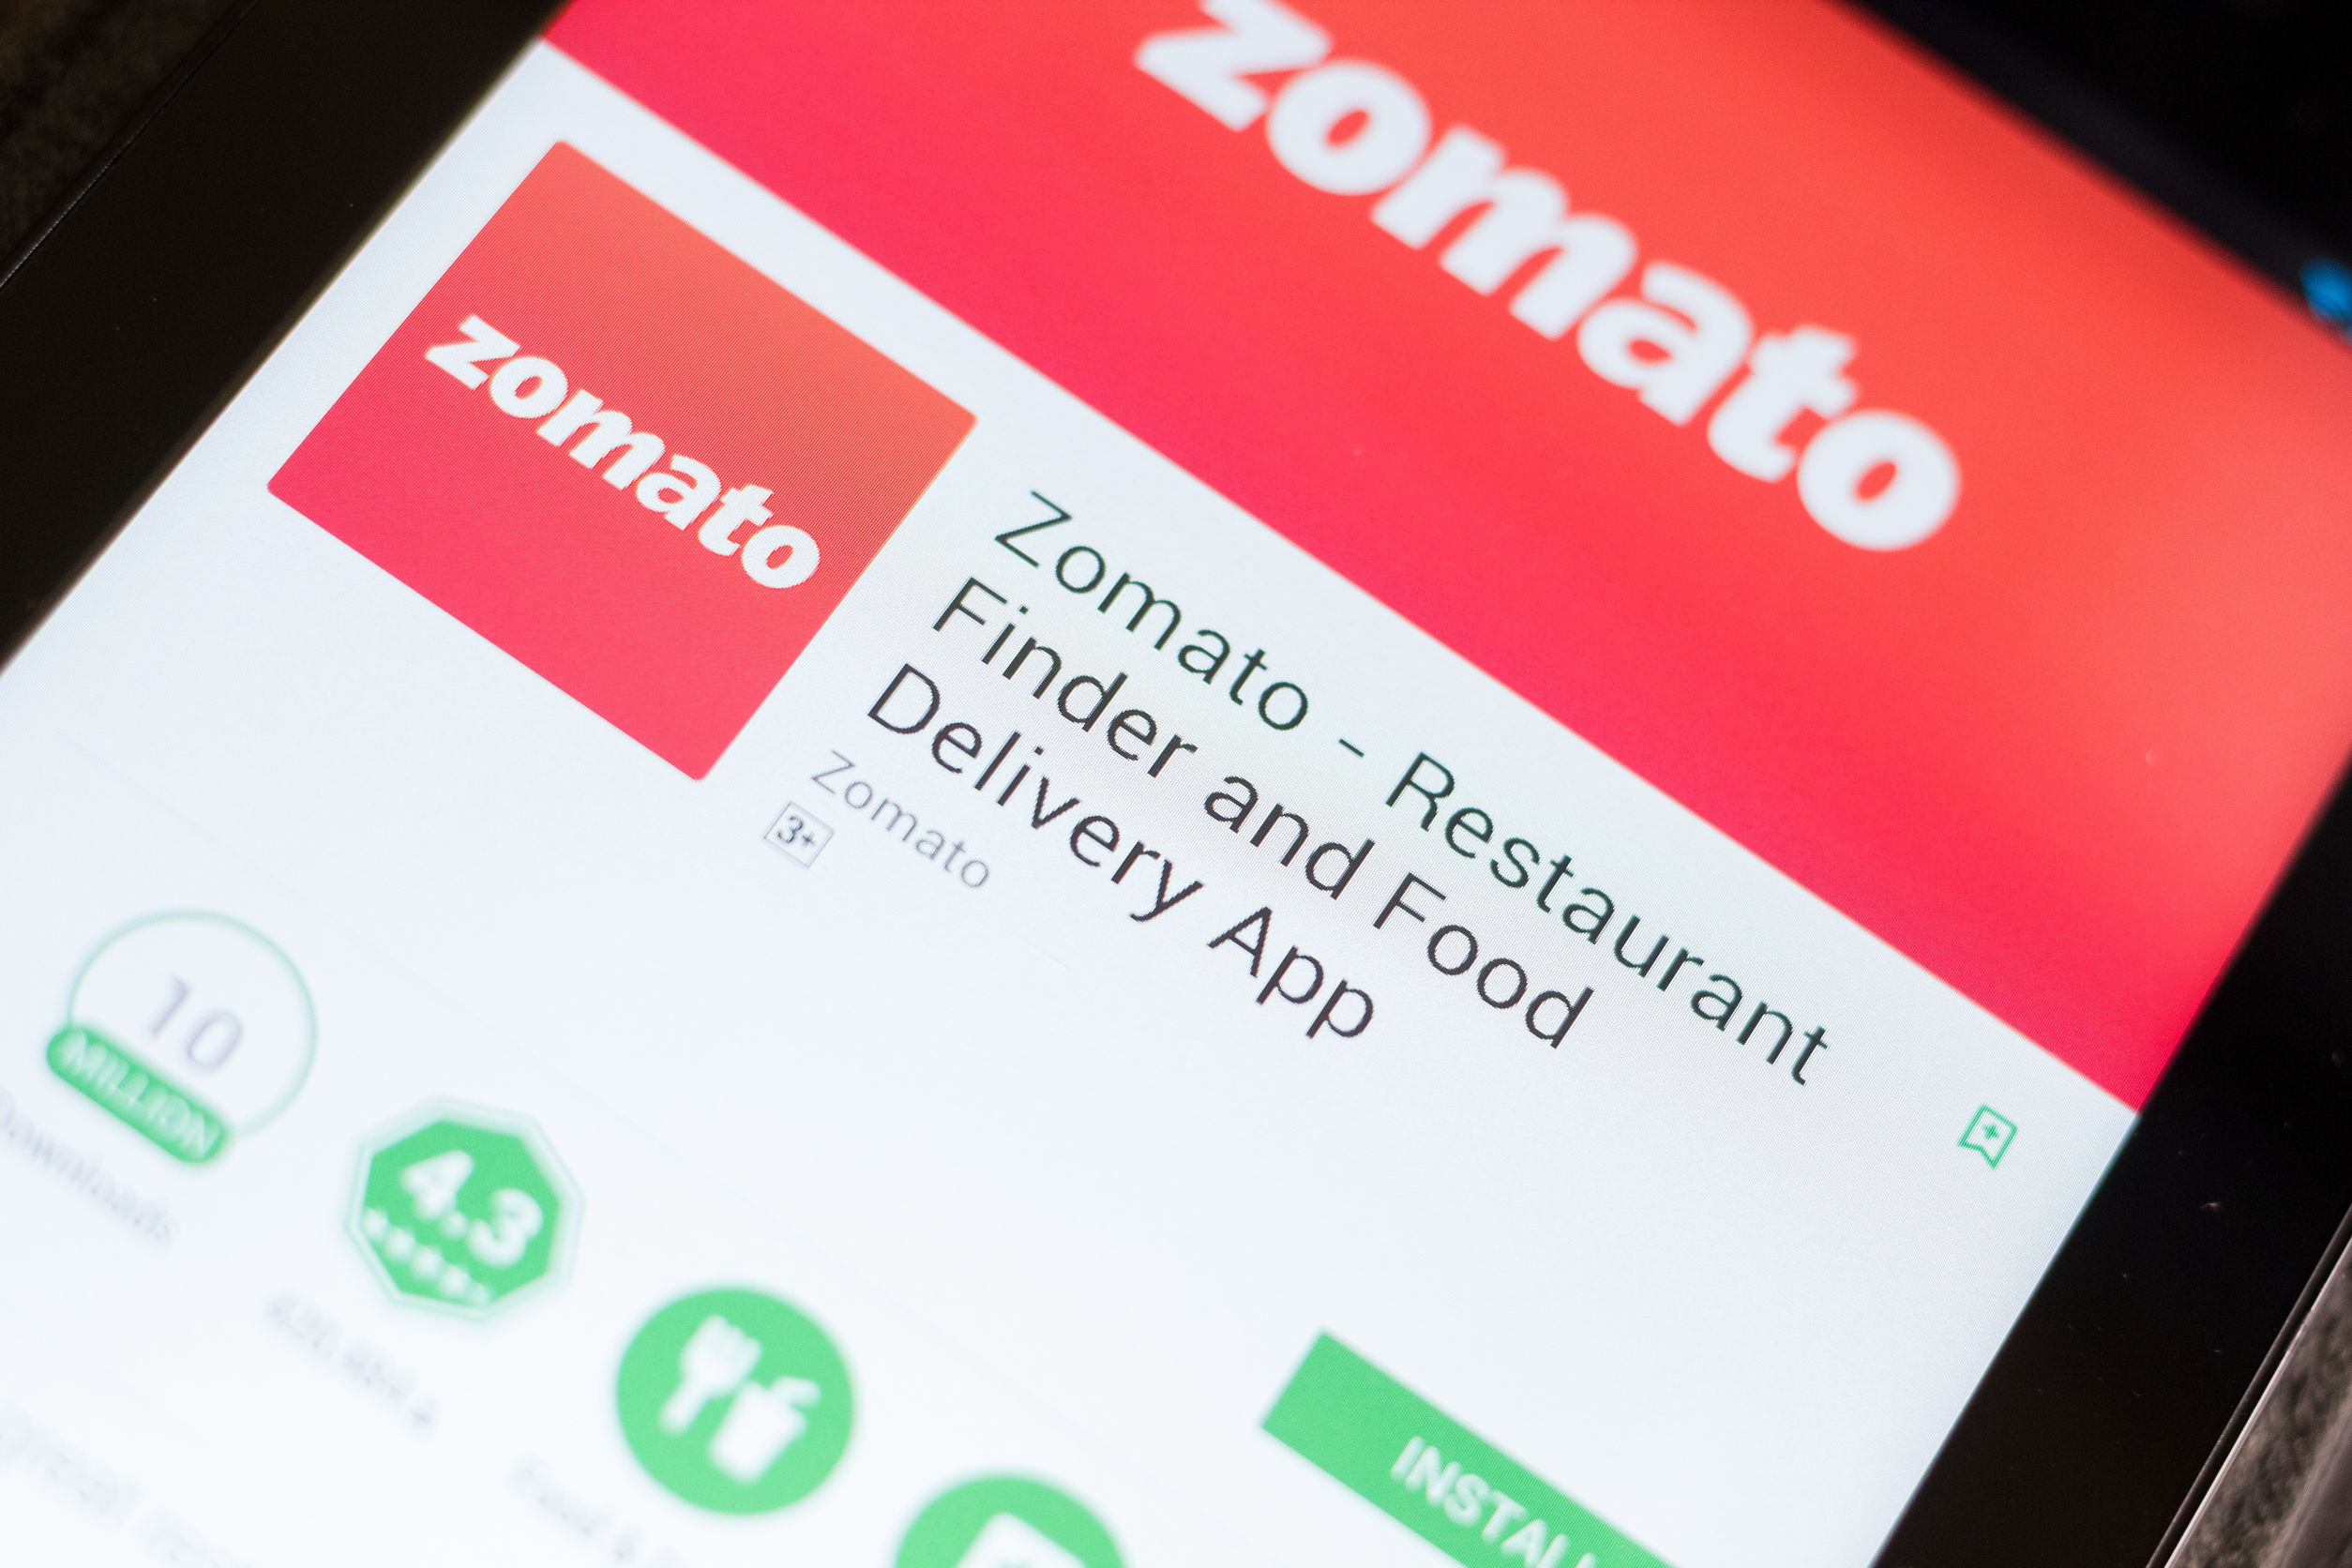 India's Zomato to chop 13% of workers